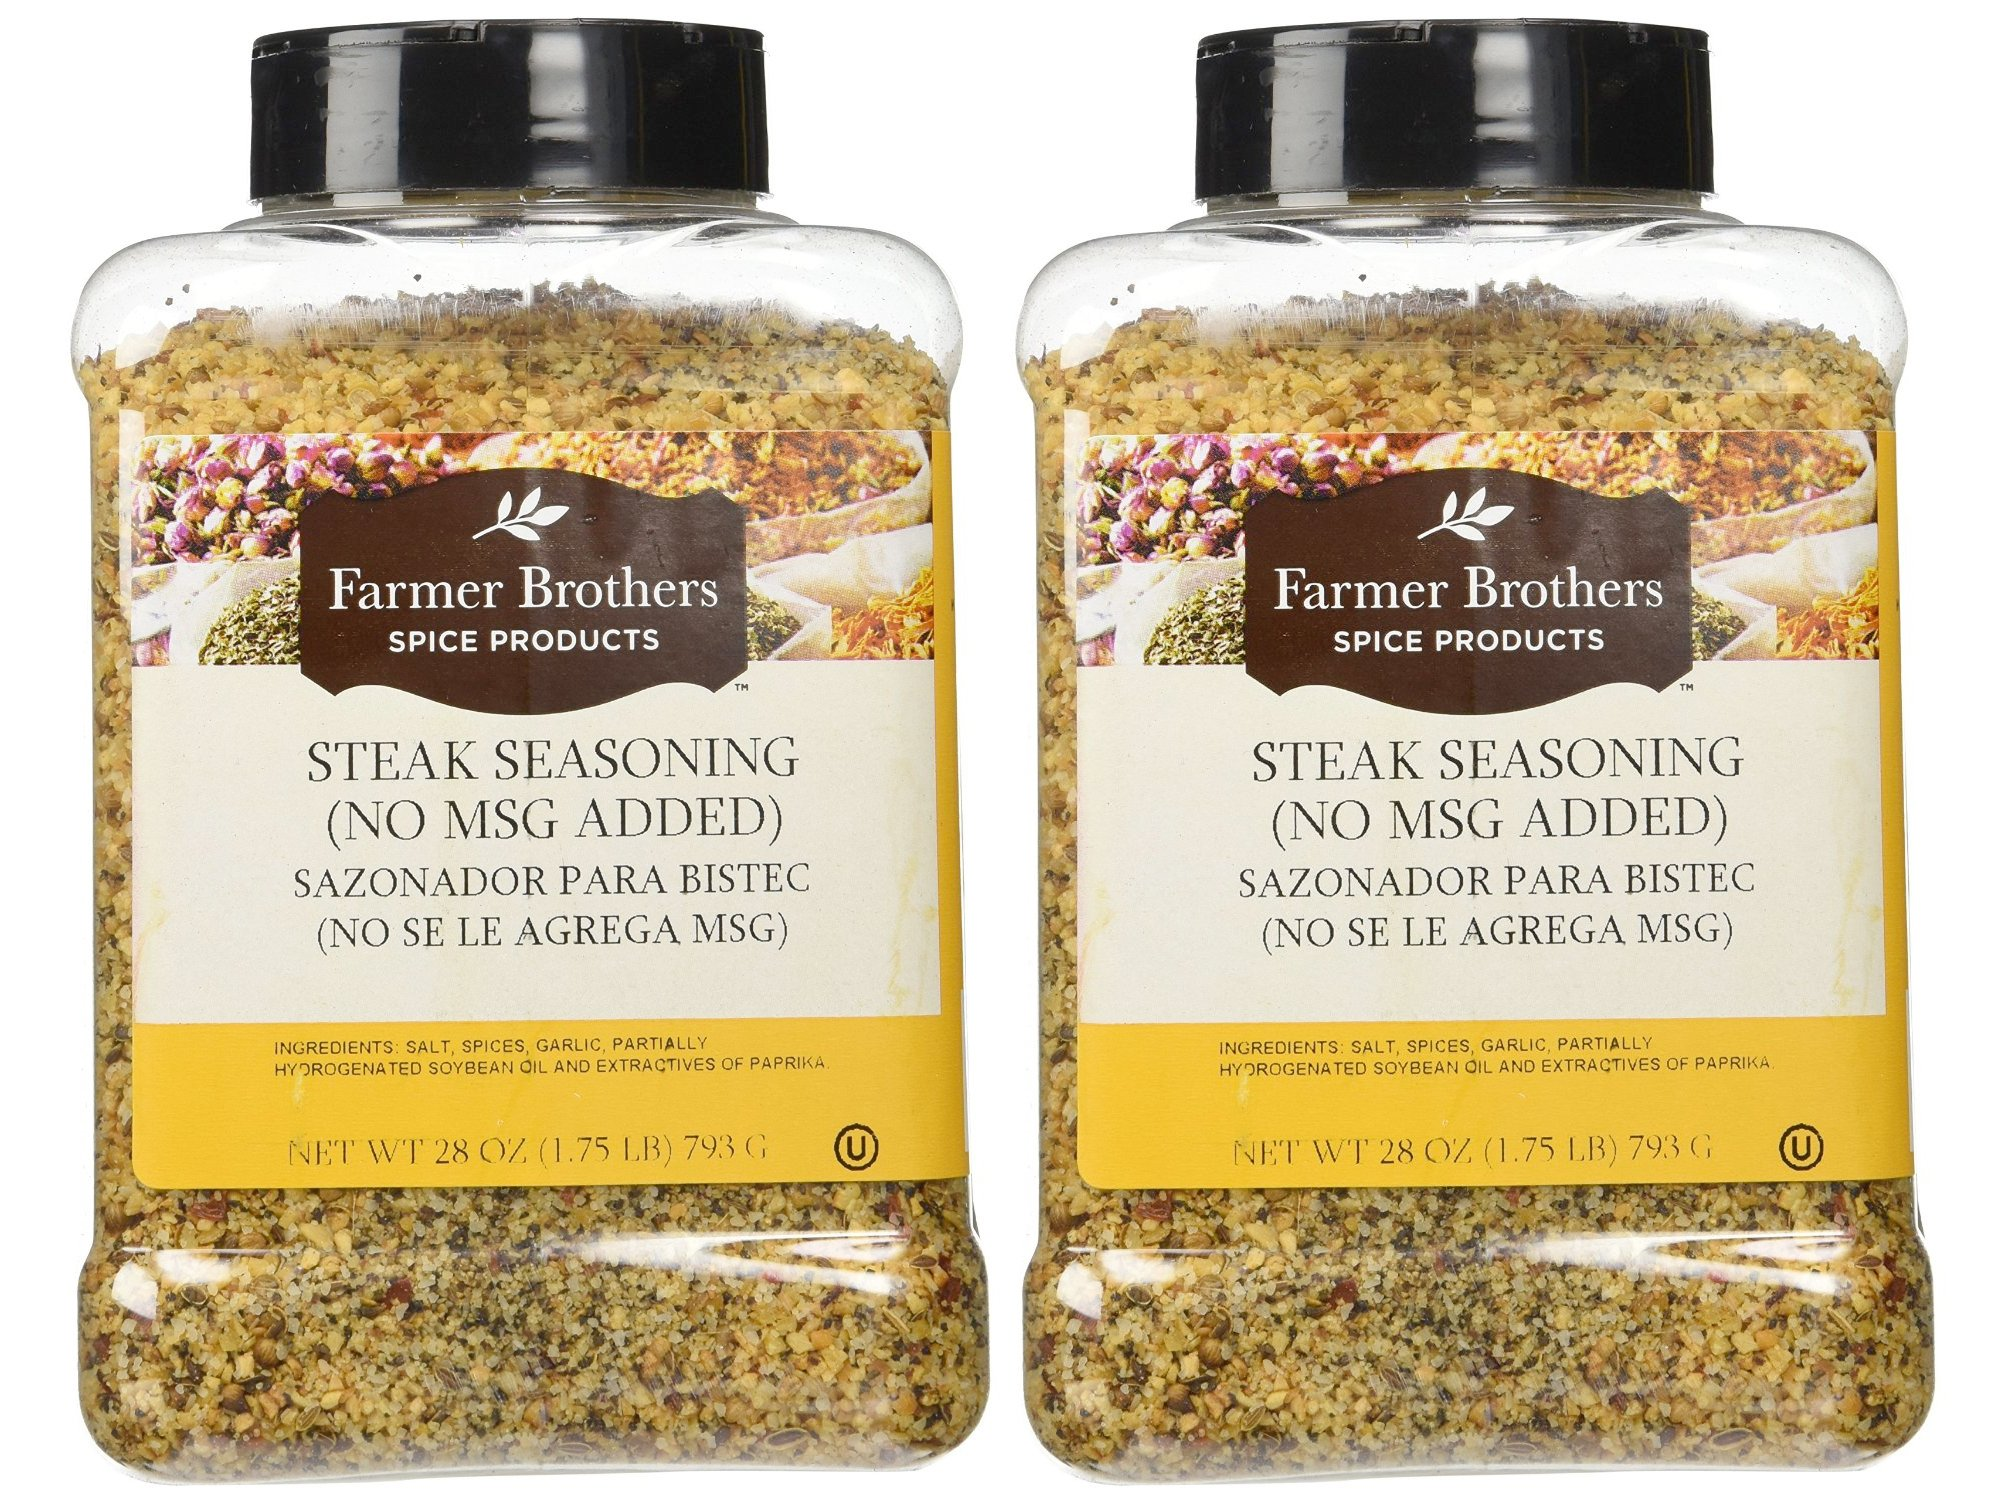 Set of Two - Farmer Brothers Steak Seasoning with no MSG 1lb 12 oz Large Restaurant/Food Service Size Container